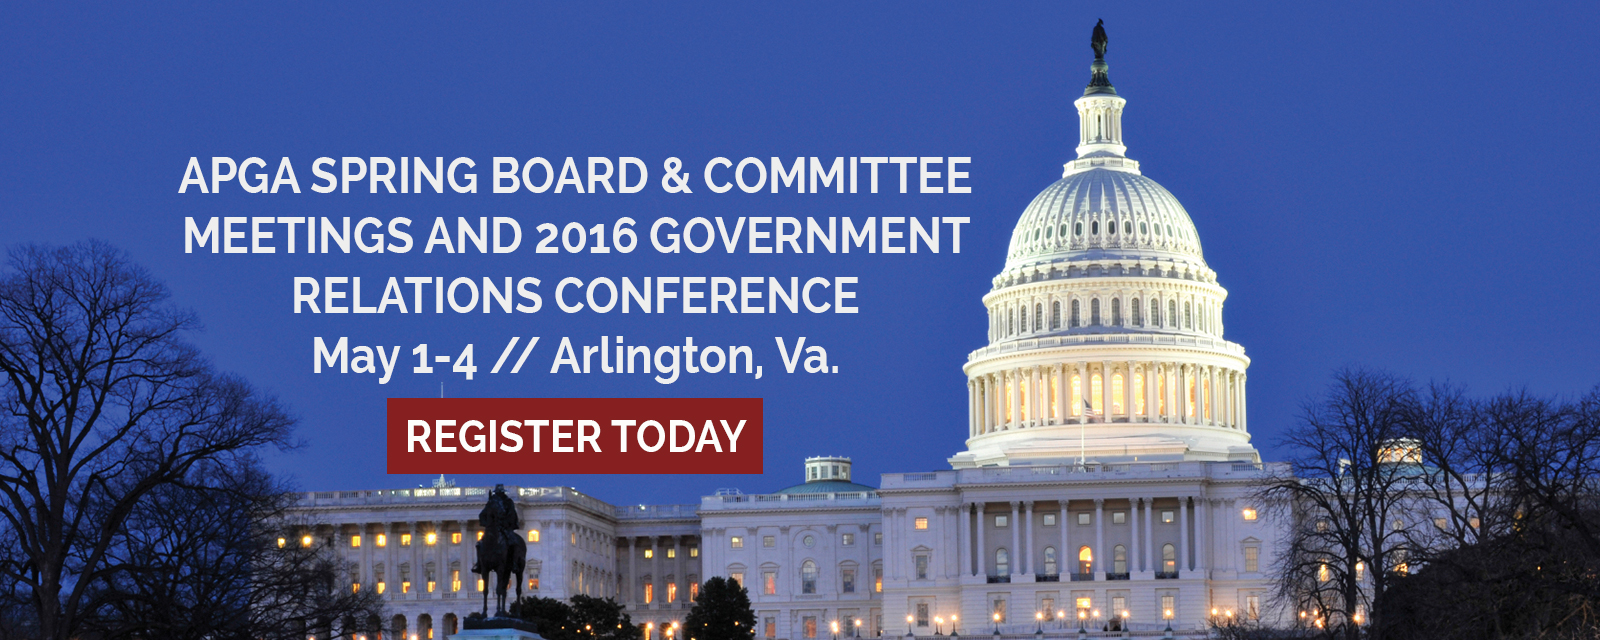 Spring Board & Committee Meetings and 2016 Government Relations Conference